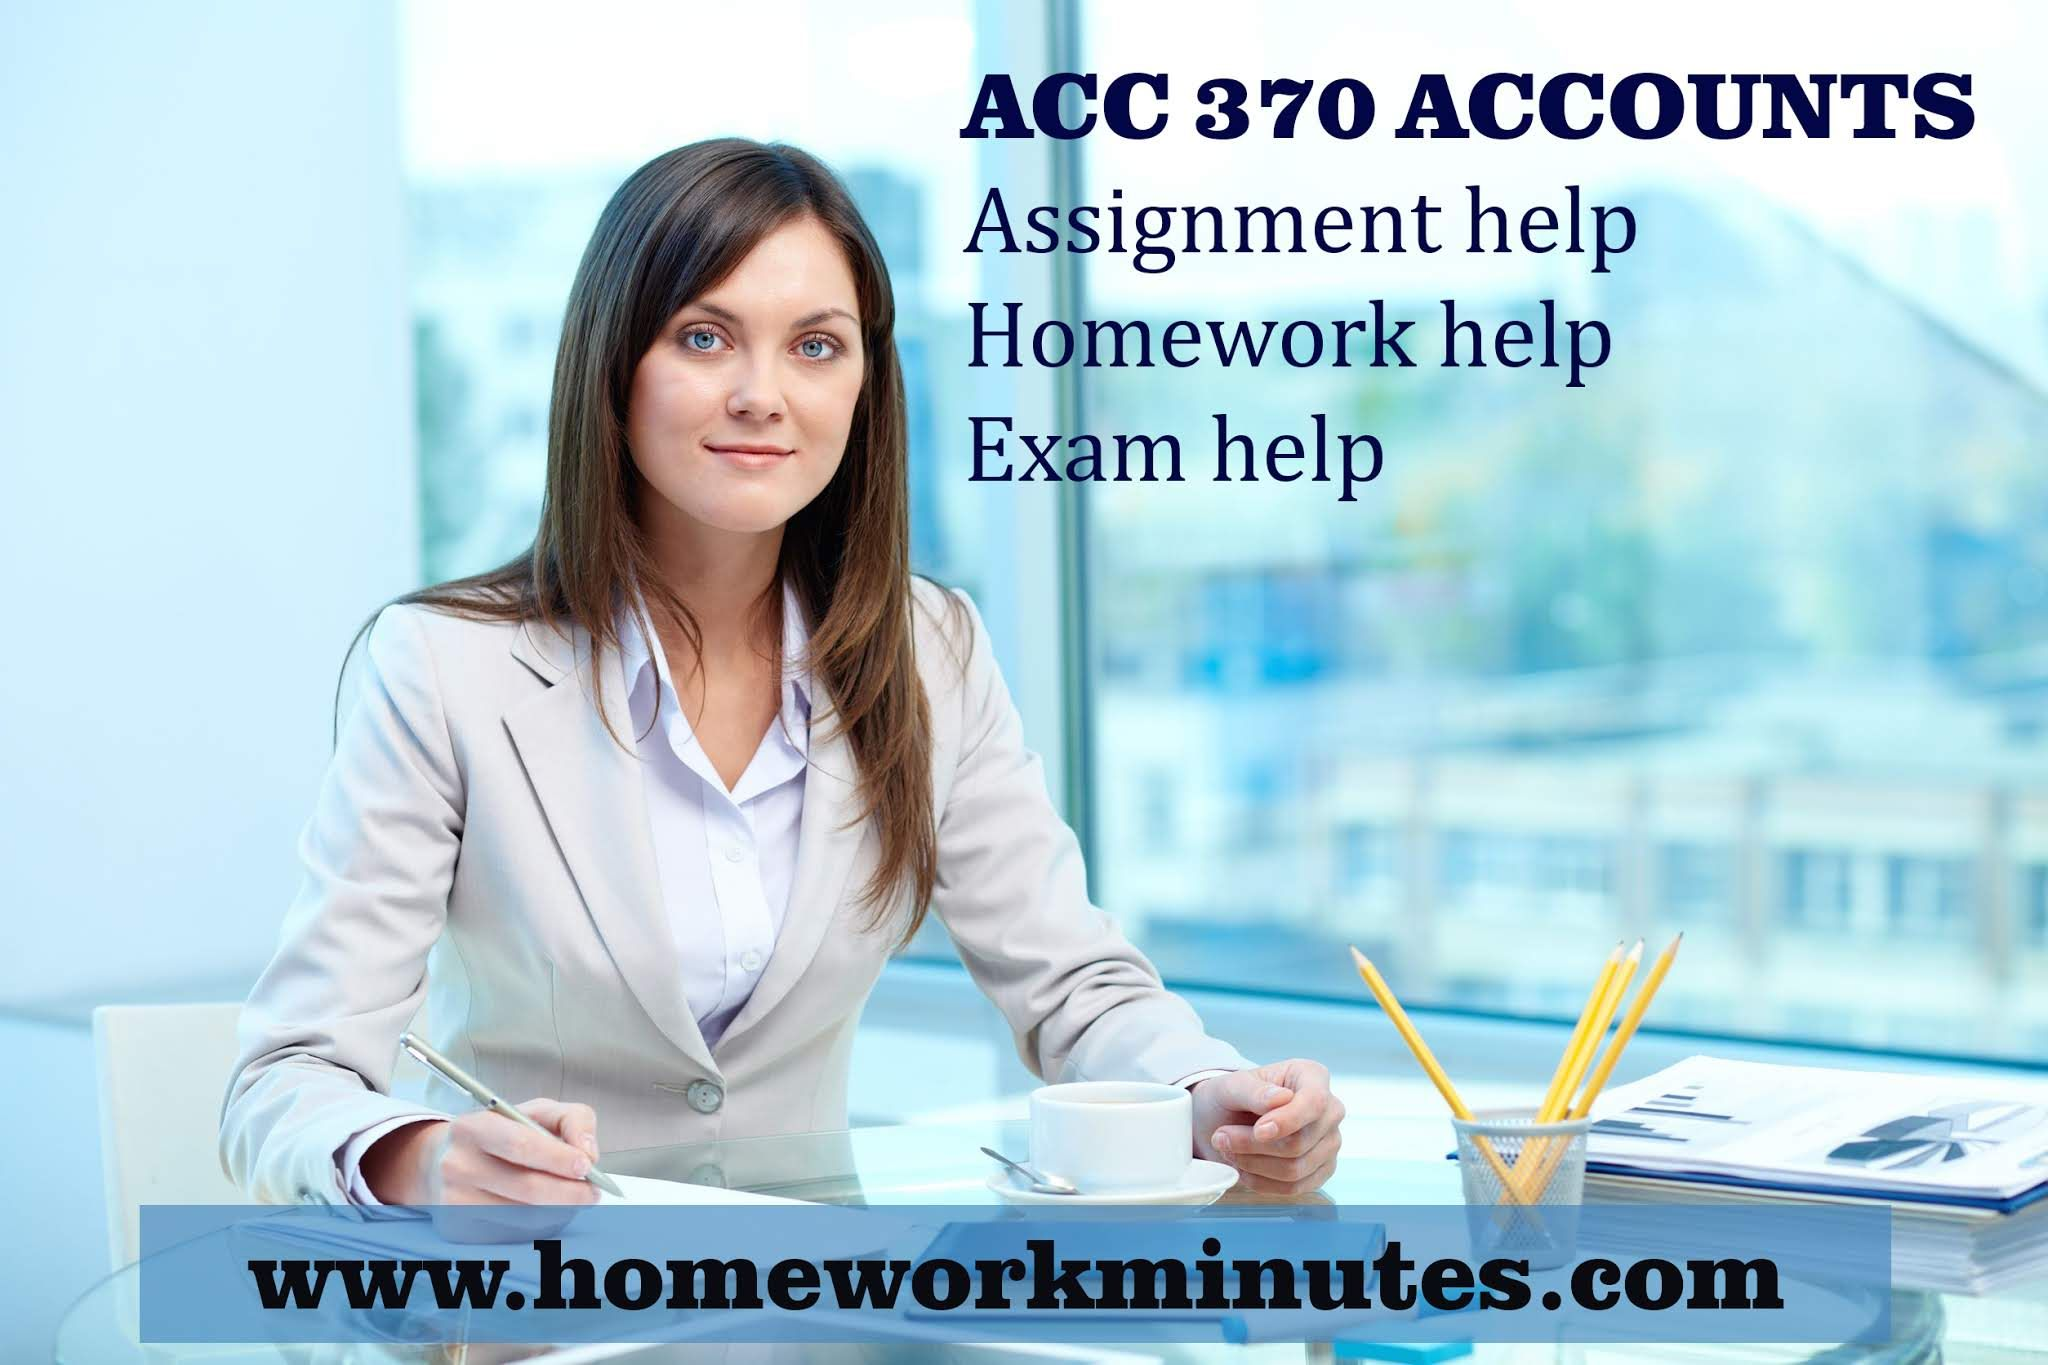 1c853e6c03ec ACC 370 Accounts homework help assignment and project help exam help study help  online tutoring.